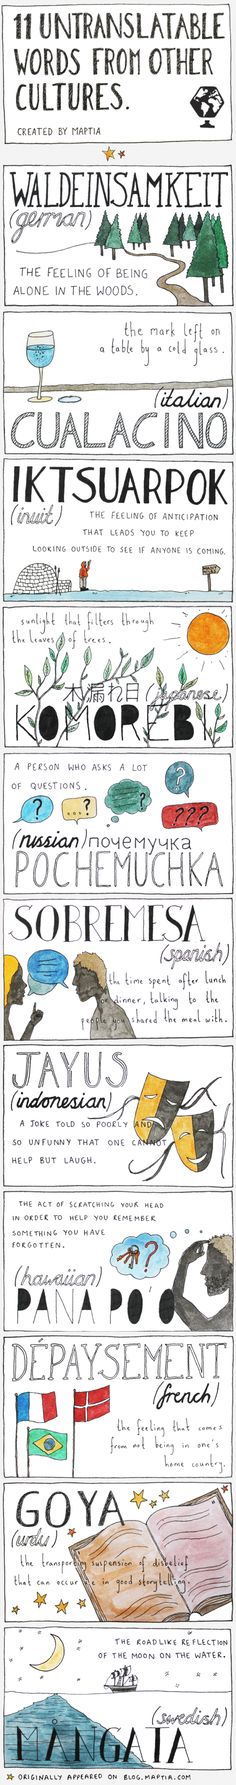 11 Untranslatable Words From Other Cultures [INFOGRAPHIC]